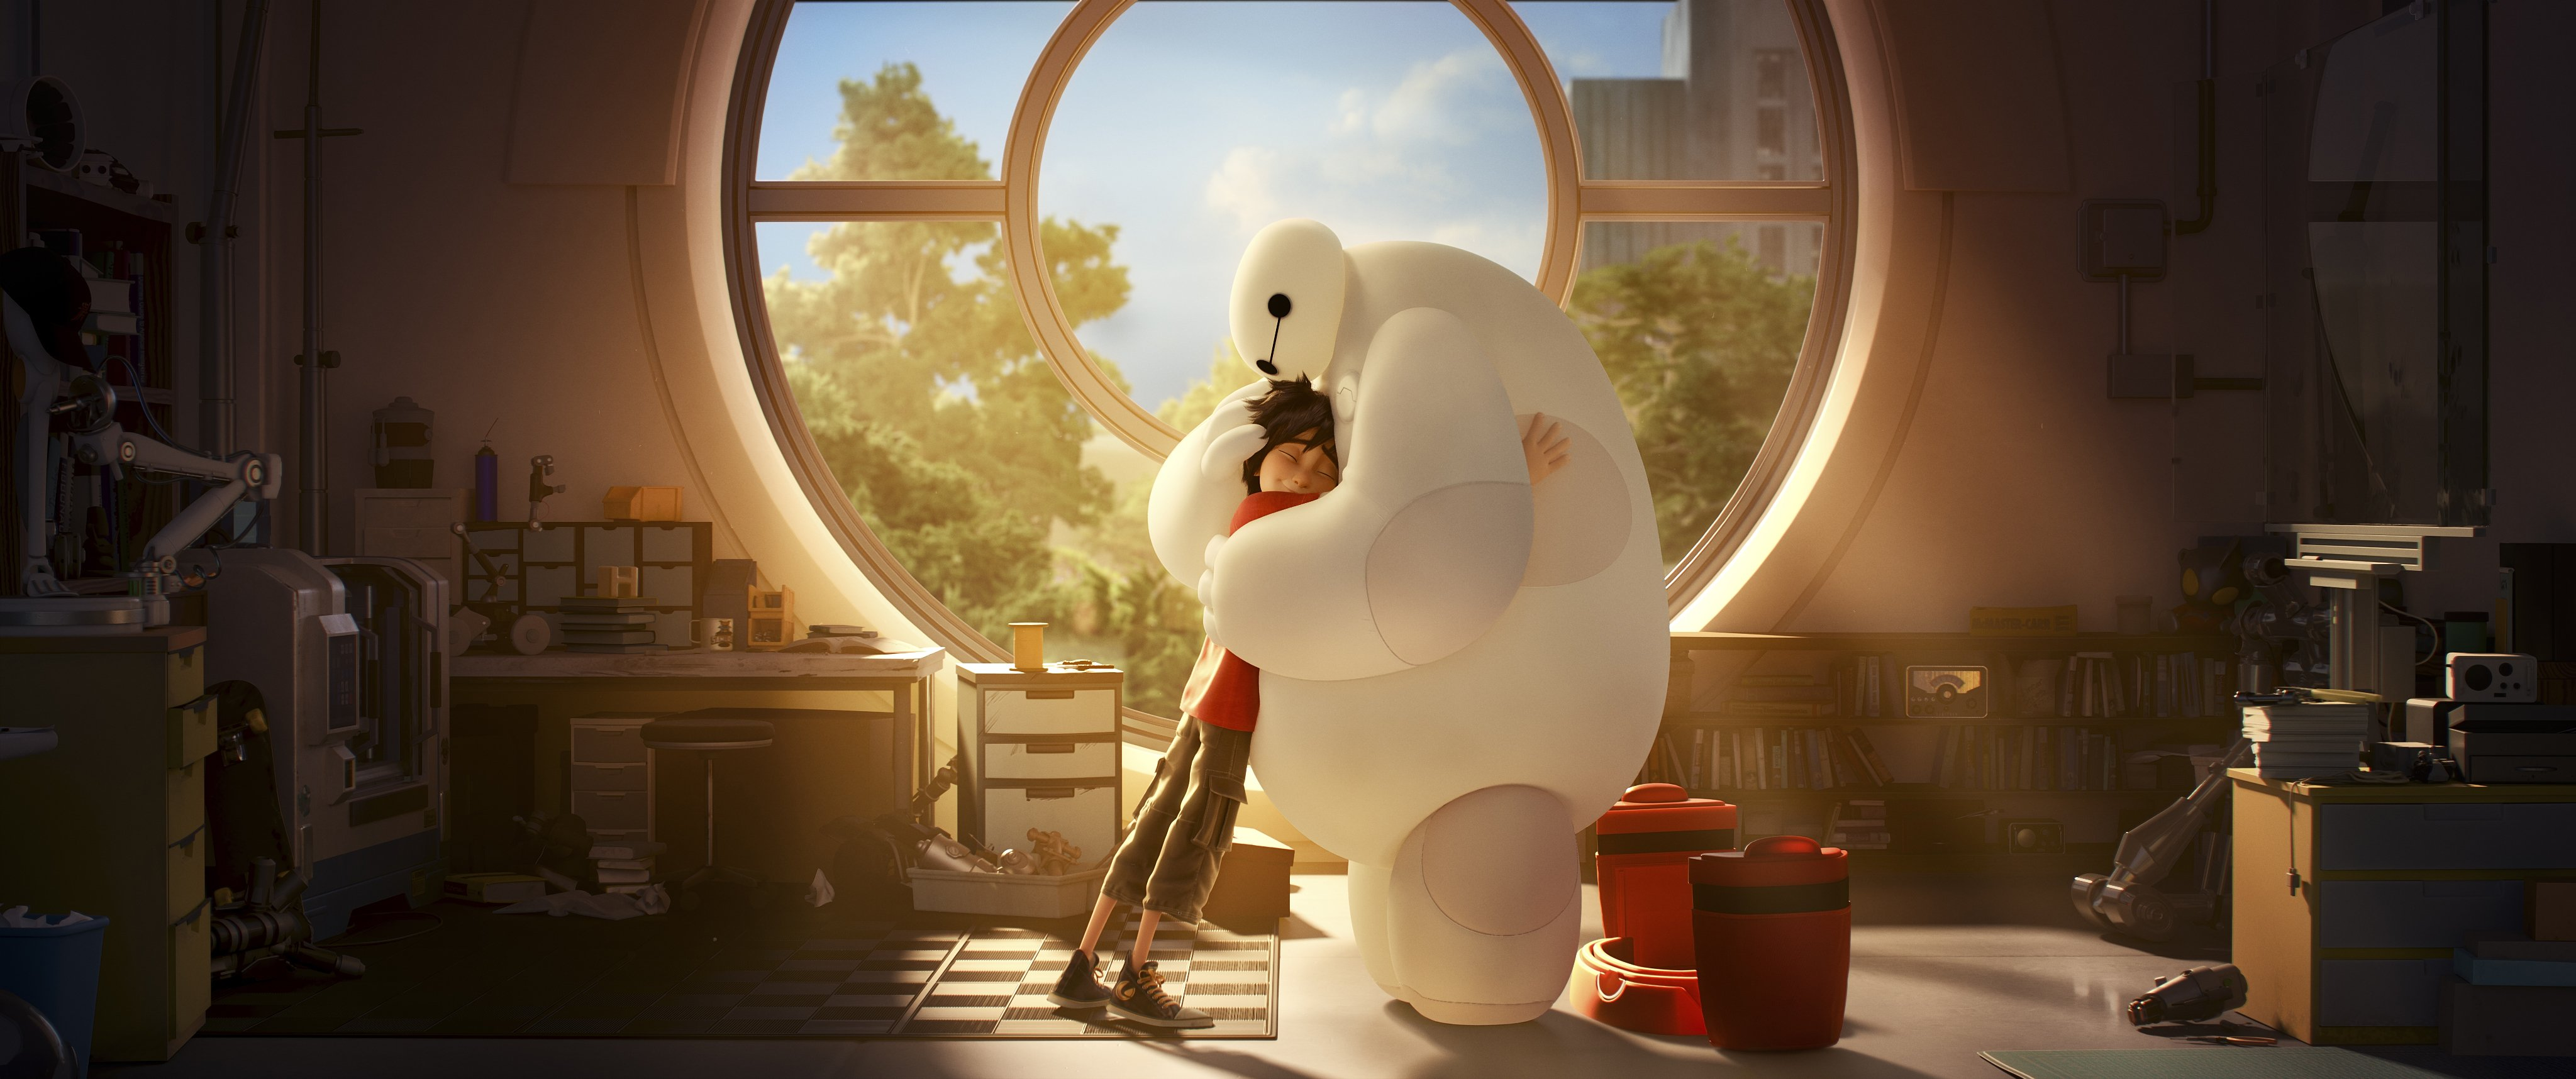 Big Hero 6 Animation Action Adventure Family Robot Cgi Superhero Big Hero Disney Wallpaper